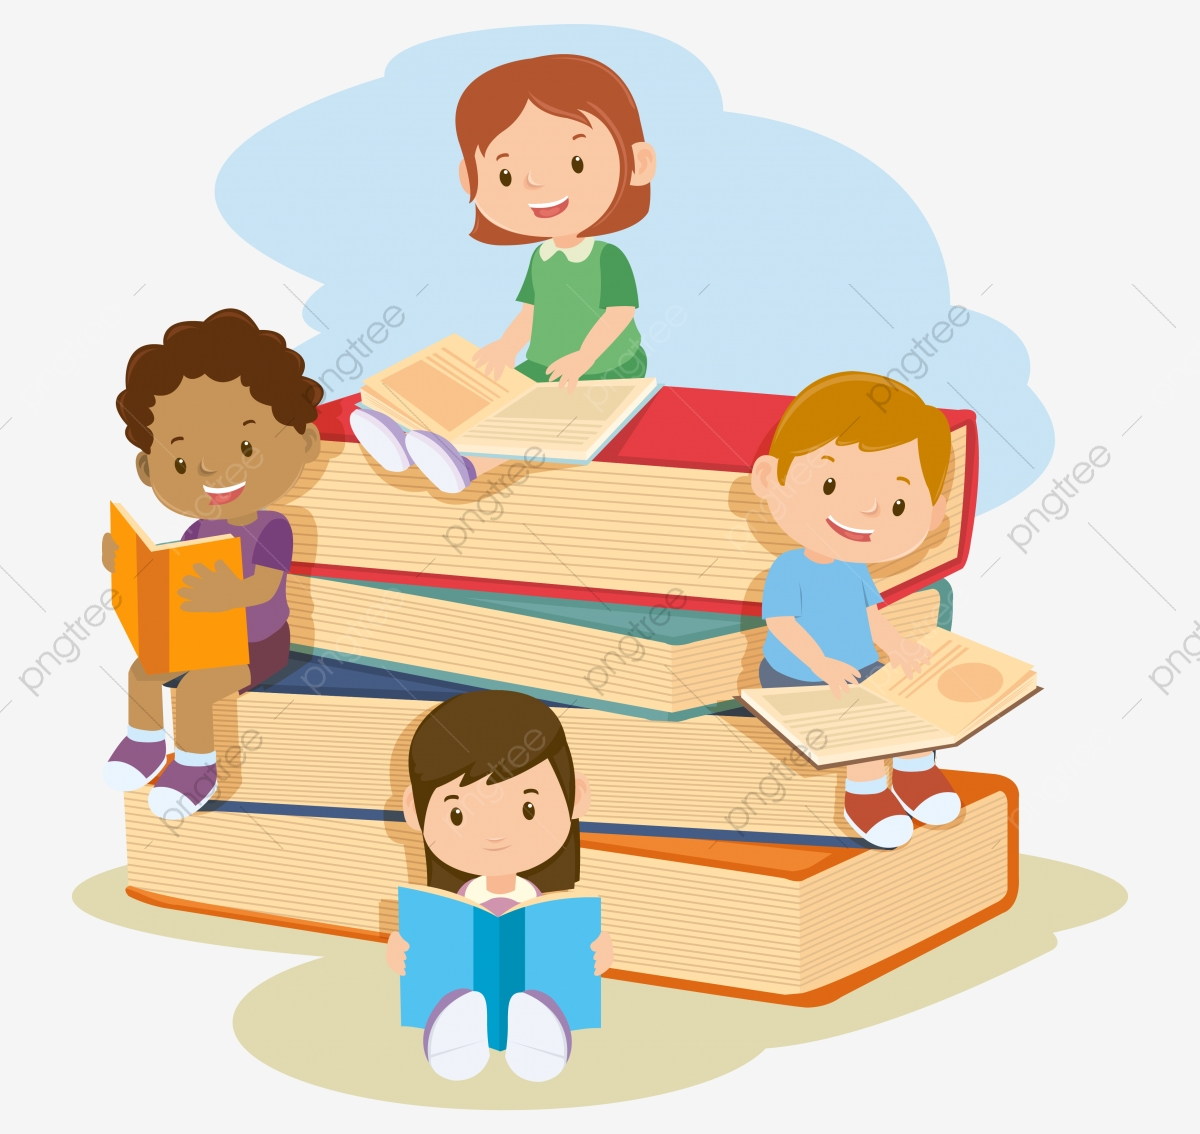 Children Reading Book Education School Kids Png And Vector With Transparent Background For Free Download